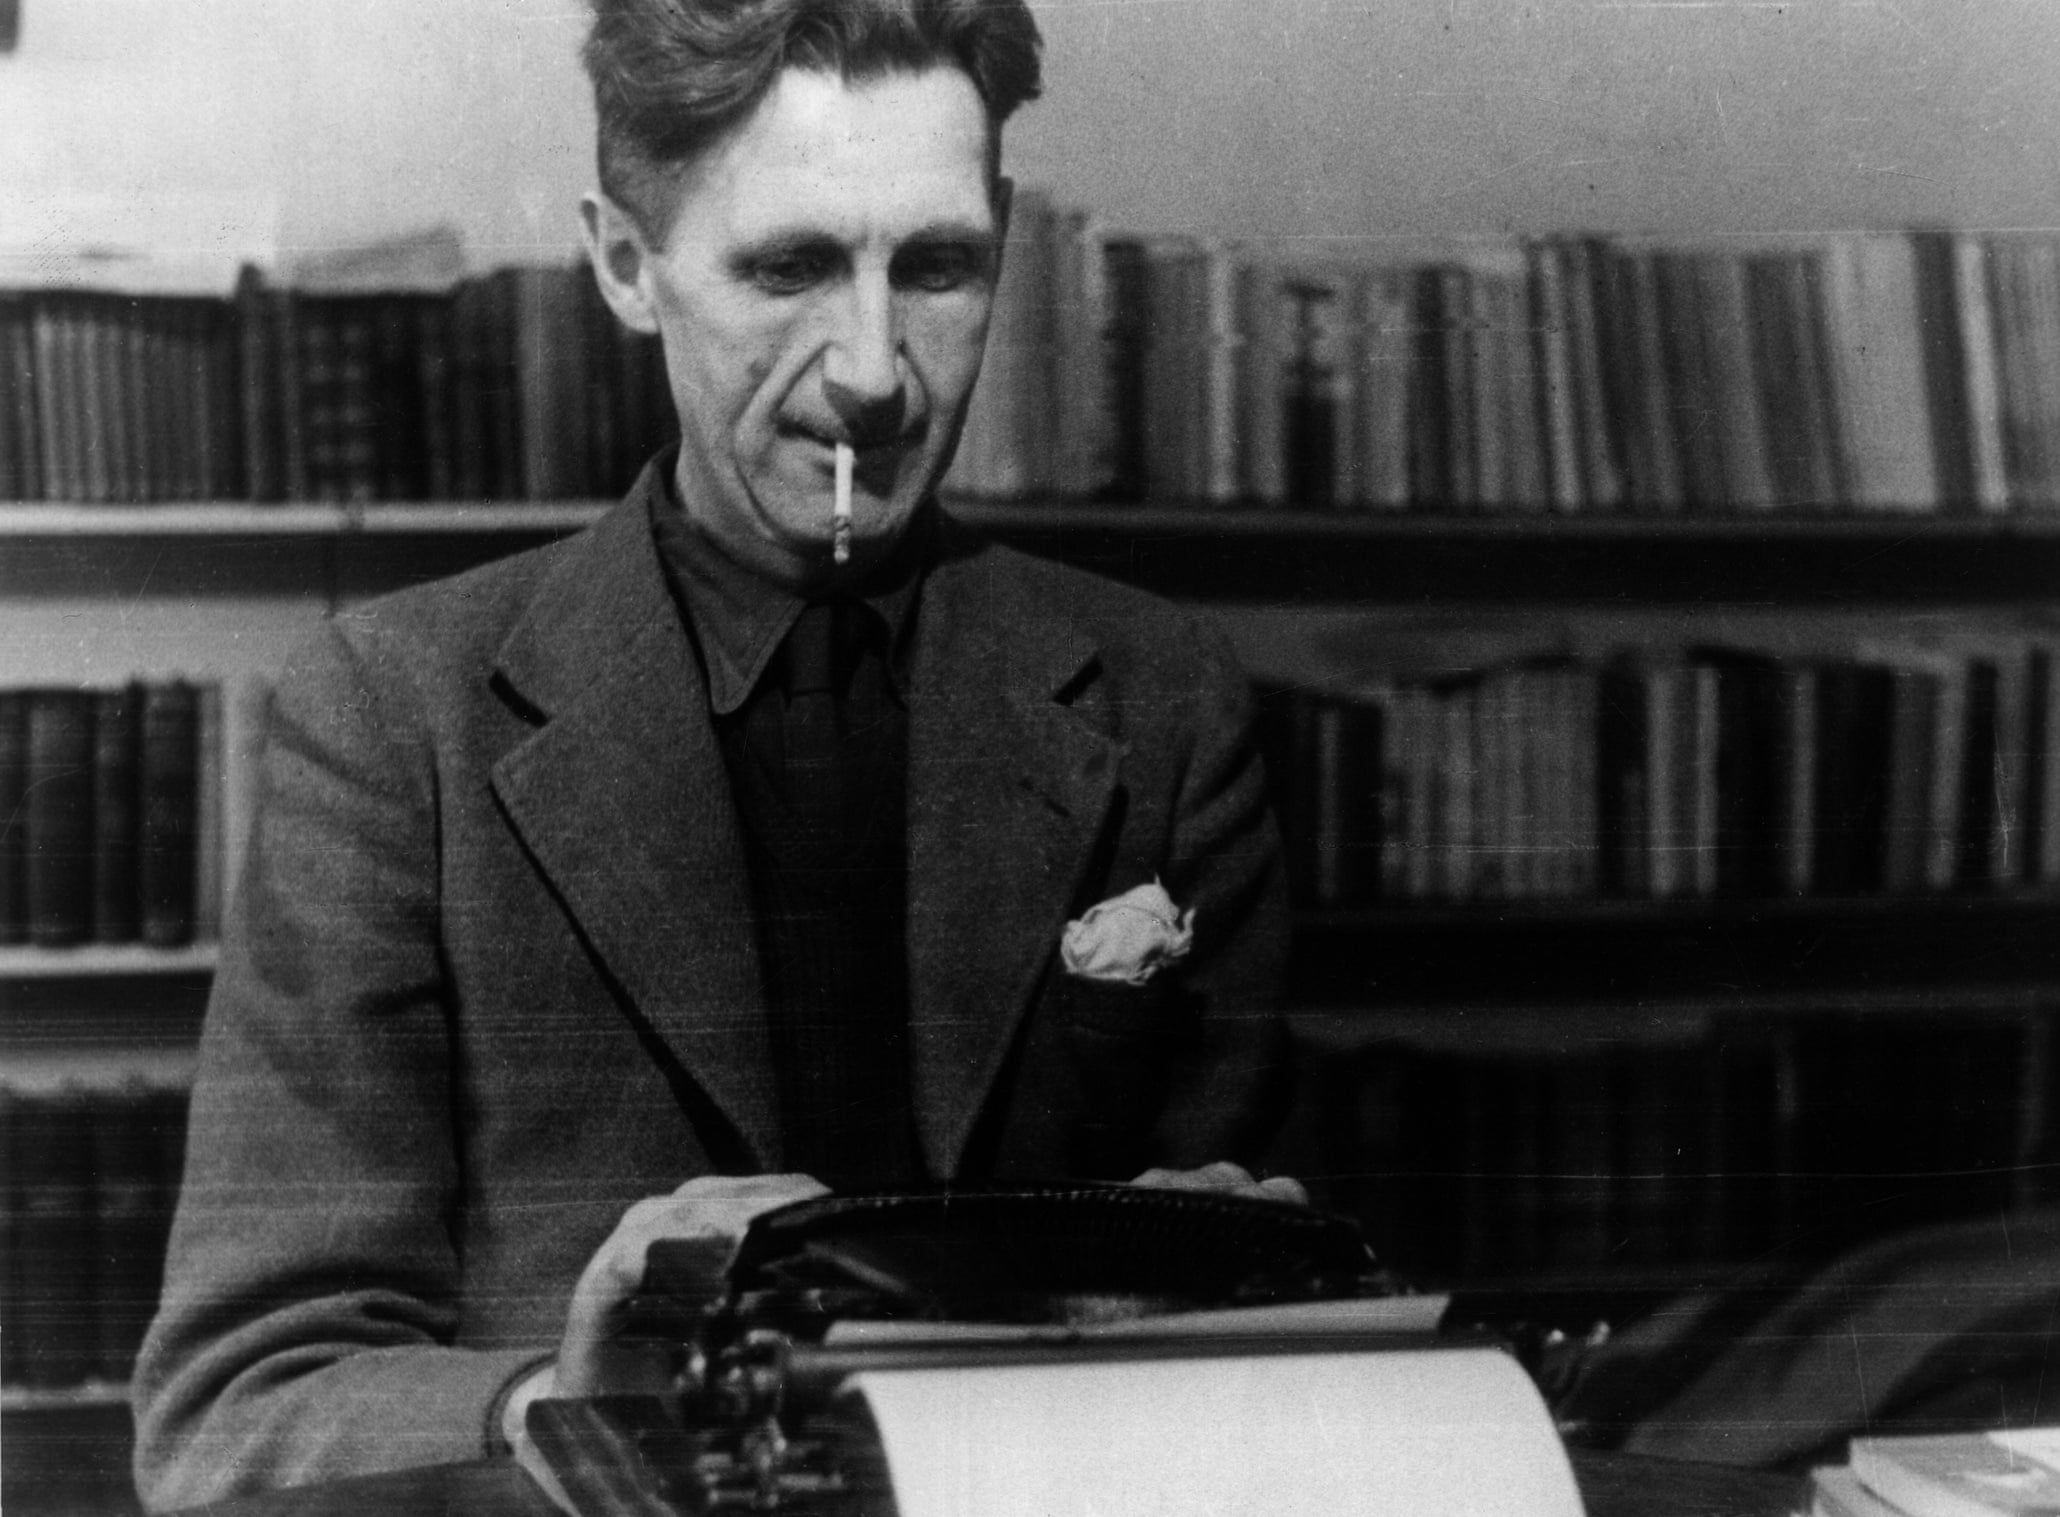 George Orwell sitting at his typewriter with a cigarette in his mouth